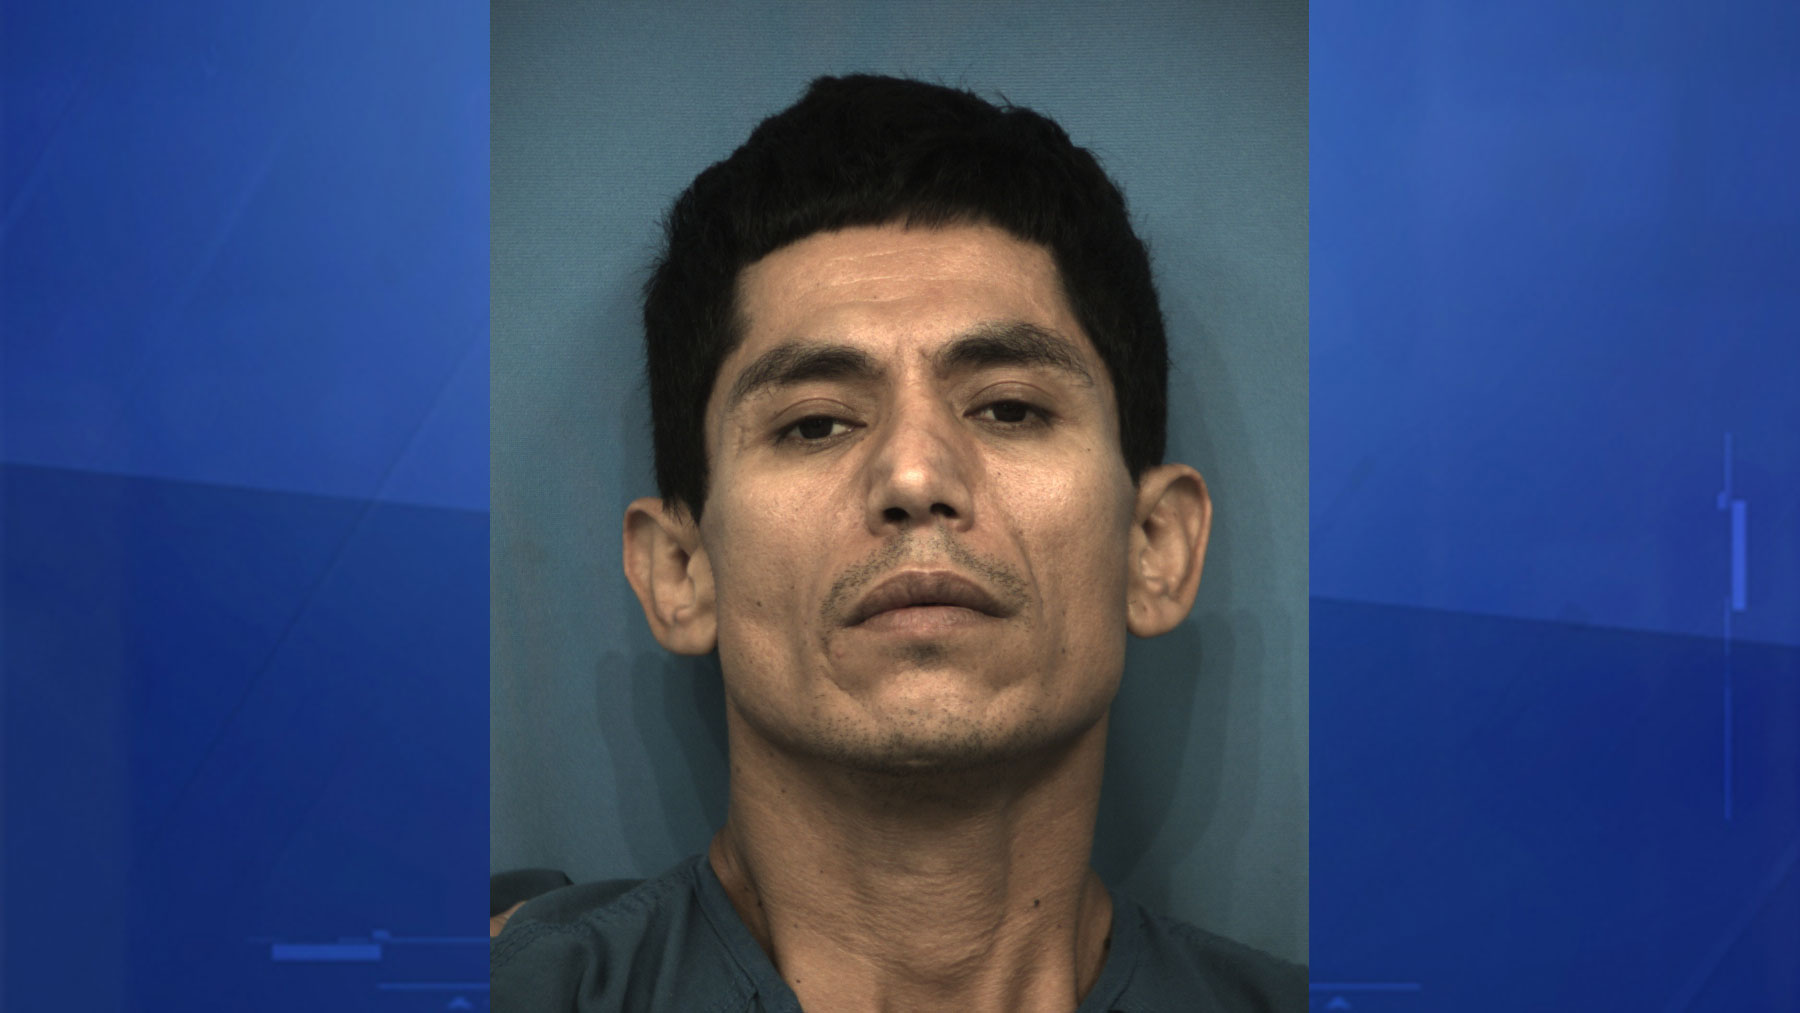 police believe undocumented immigrant s crime spree was random wfaa